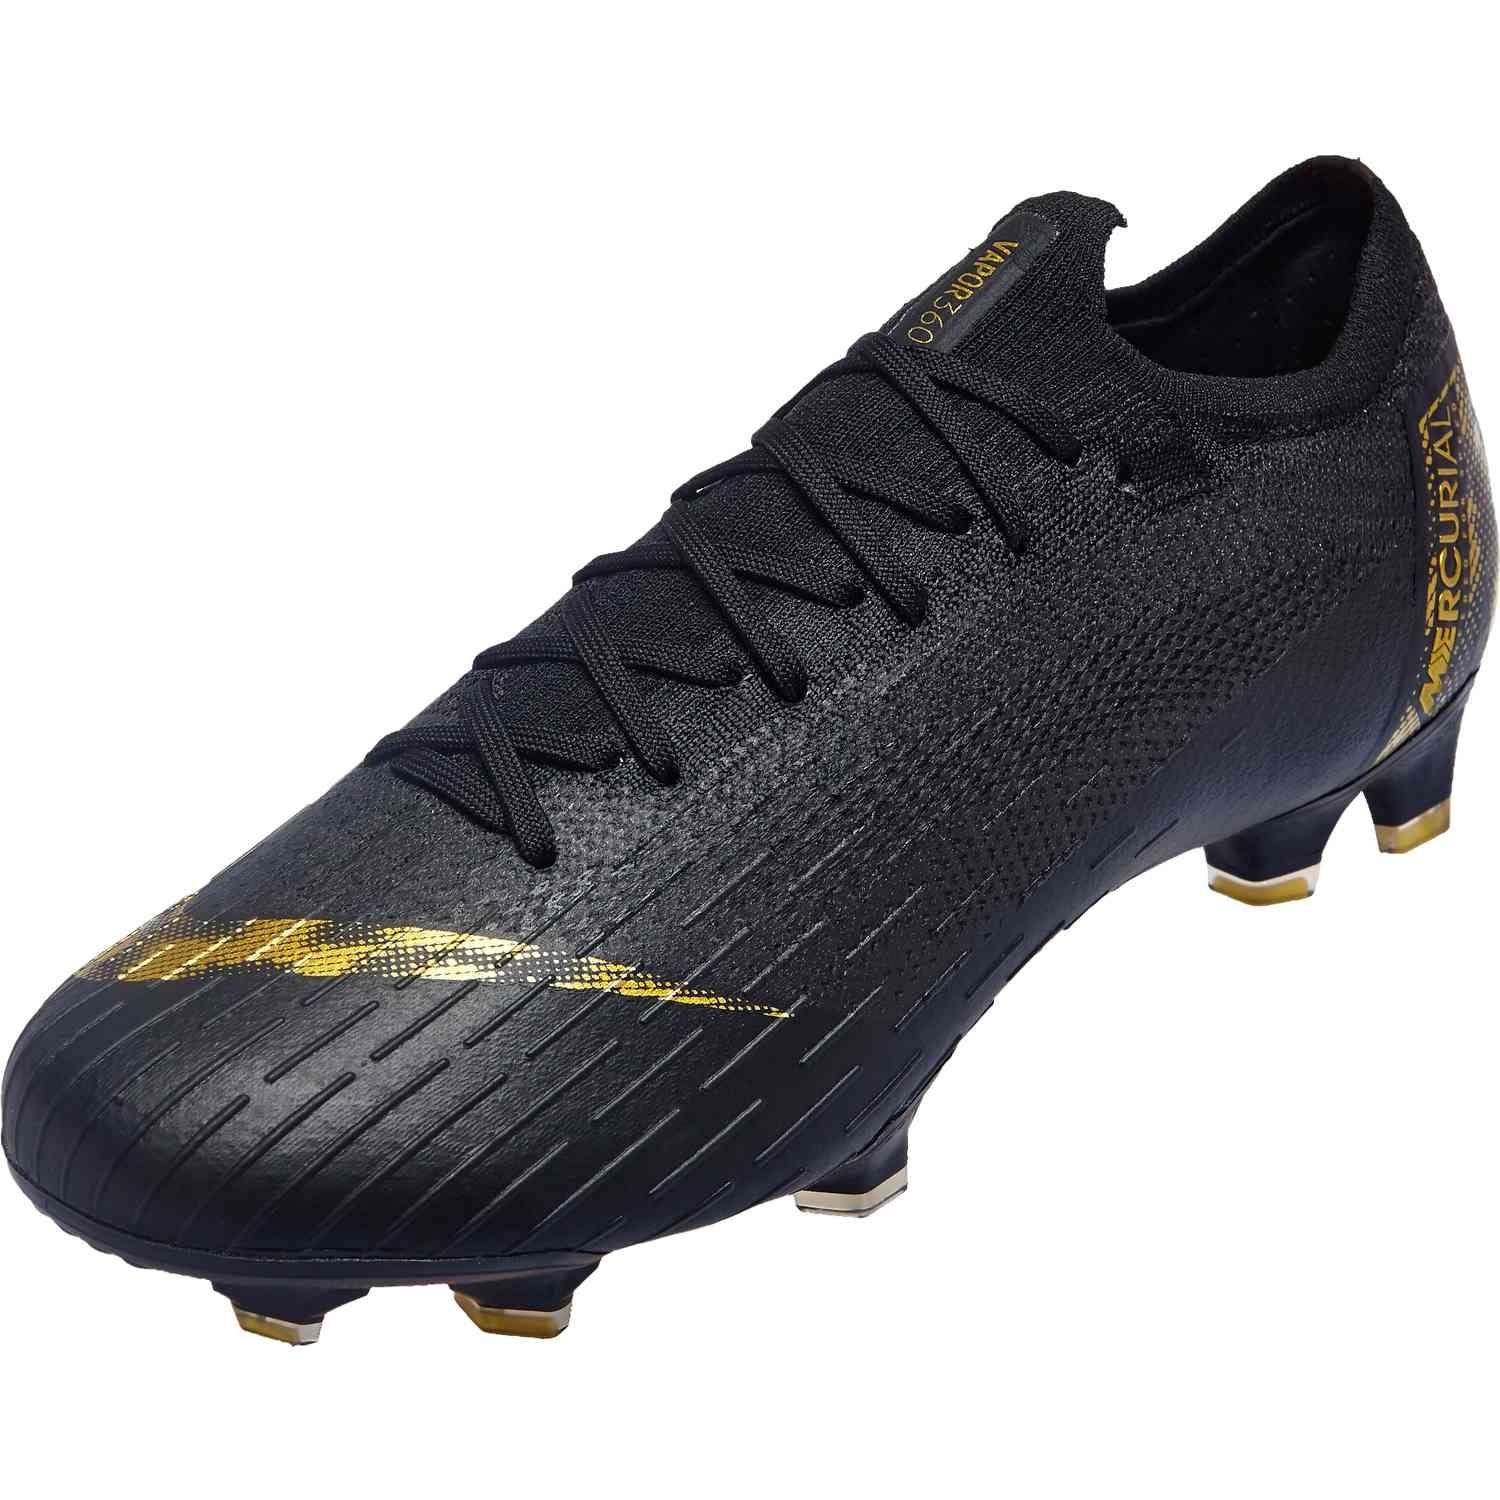 066d2028cbd Shop for the Black Lux pack Nike Mercurial Vapor 12 Elite from soccerpro.com